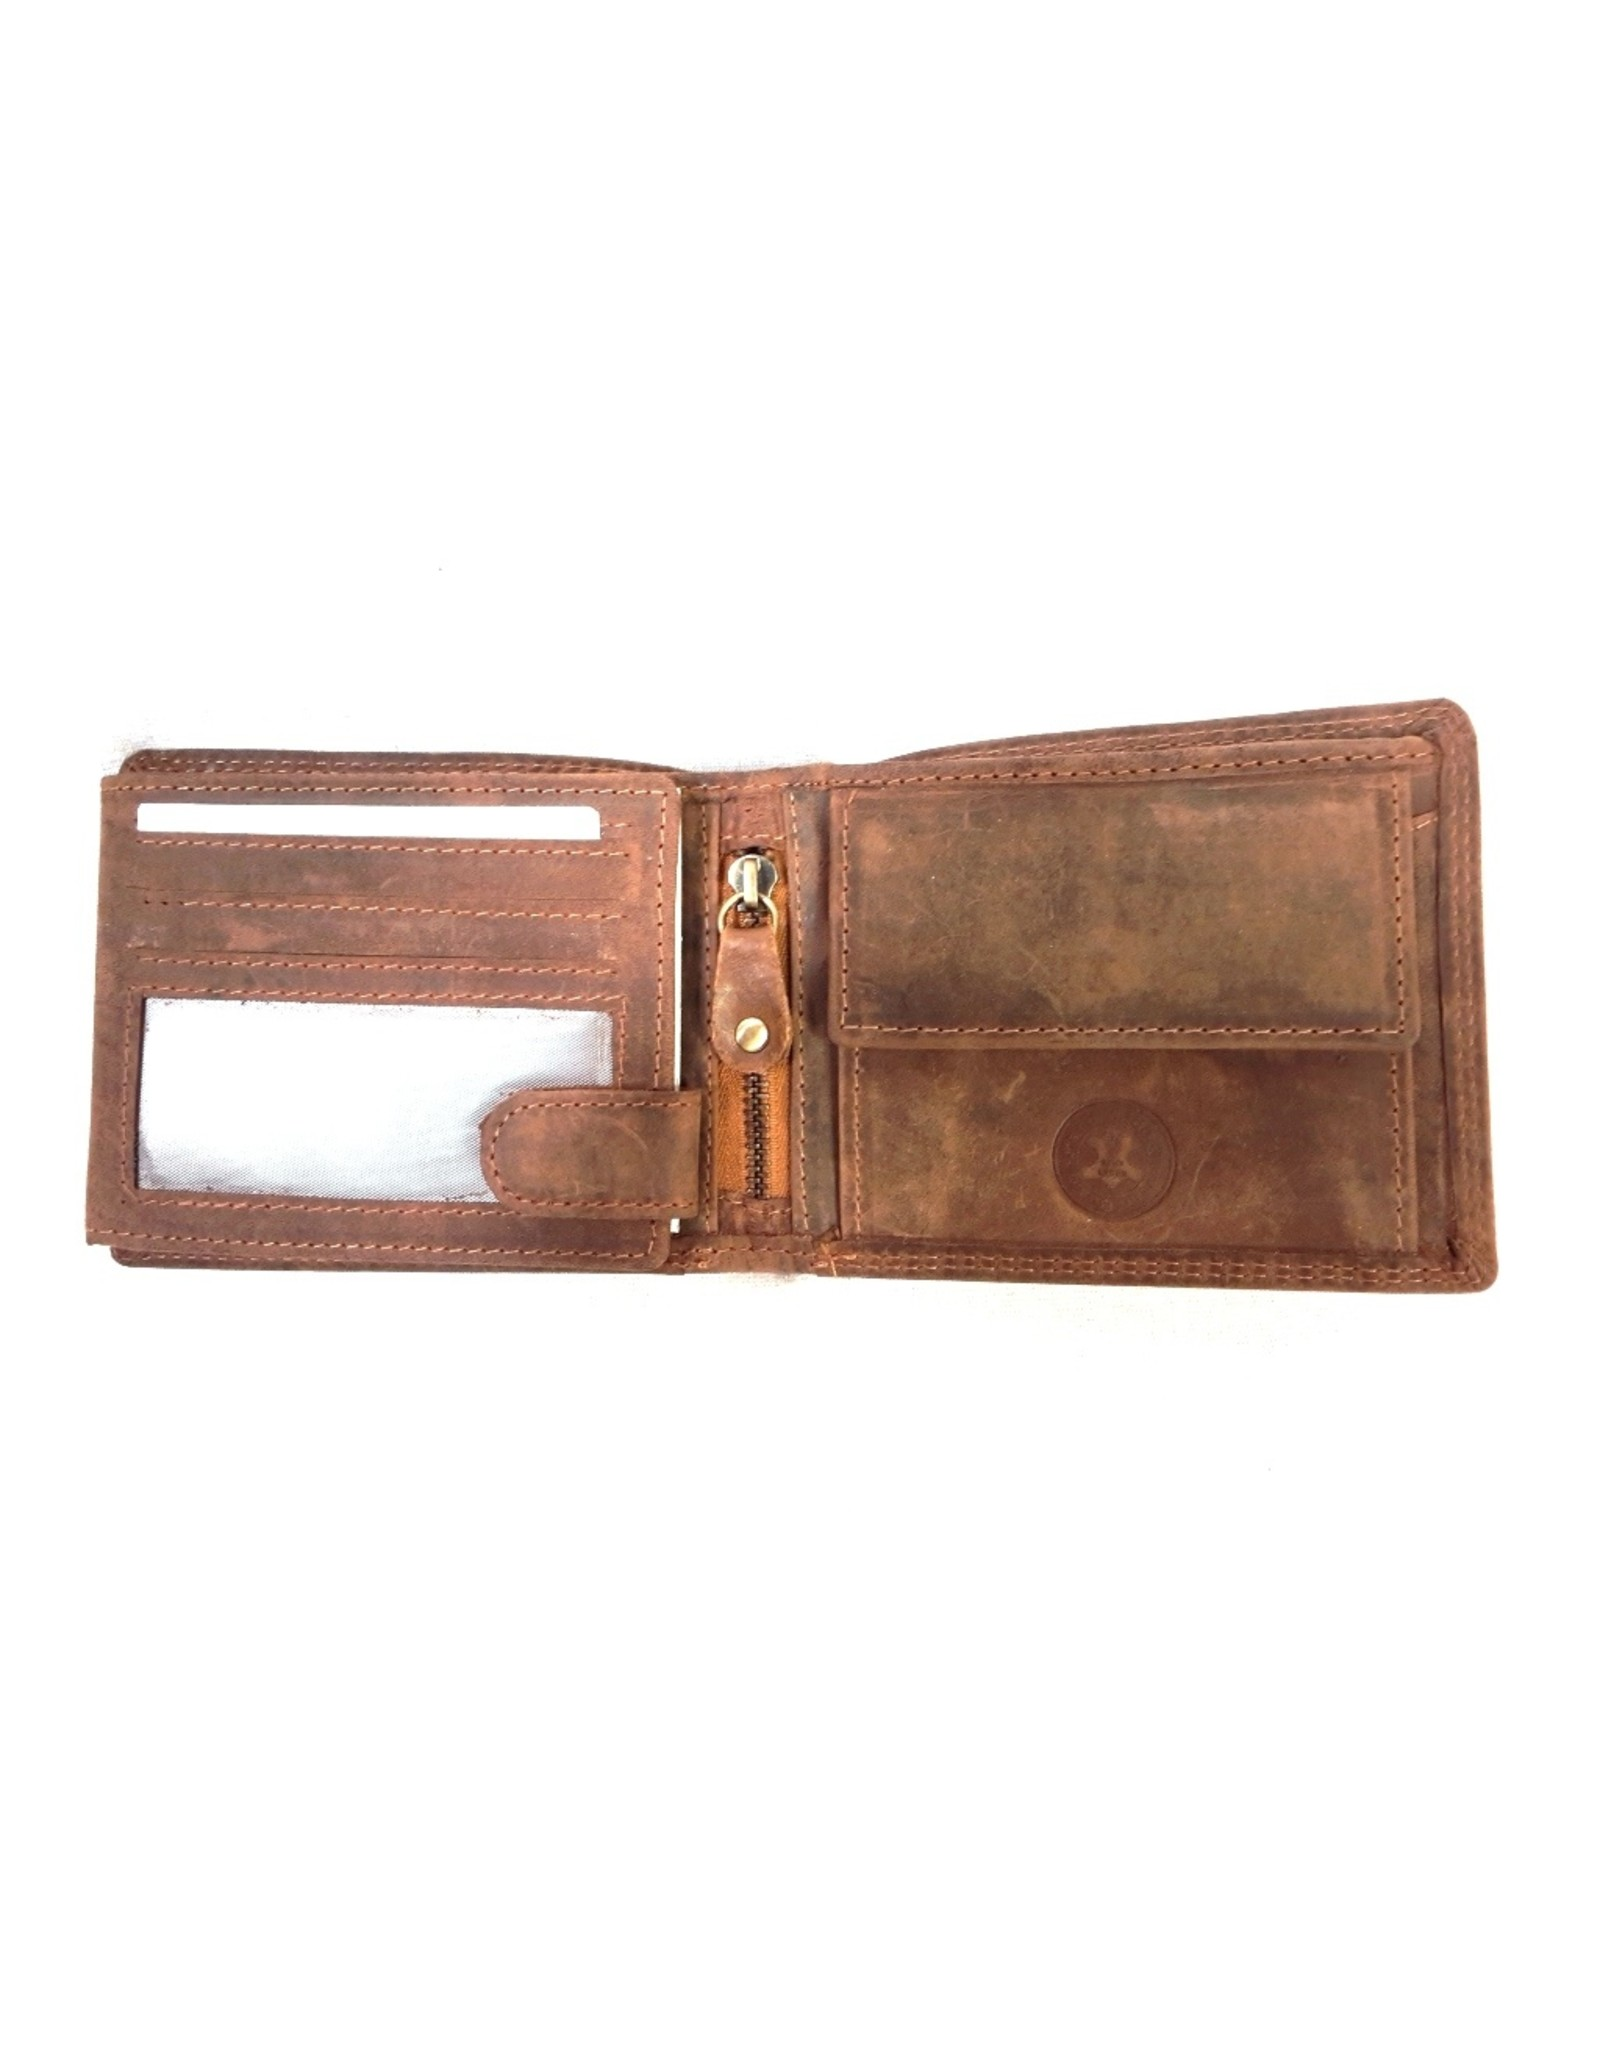 Wild Thing Leather Statement Wallets - Leather wallet Skull with Marines Beret and Wings